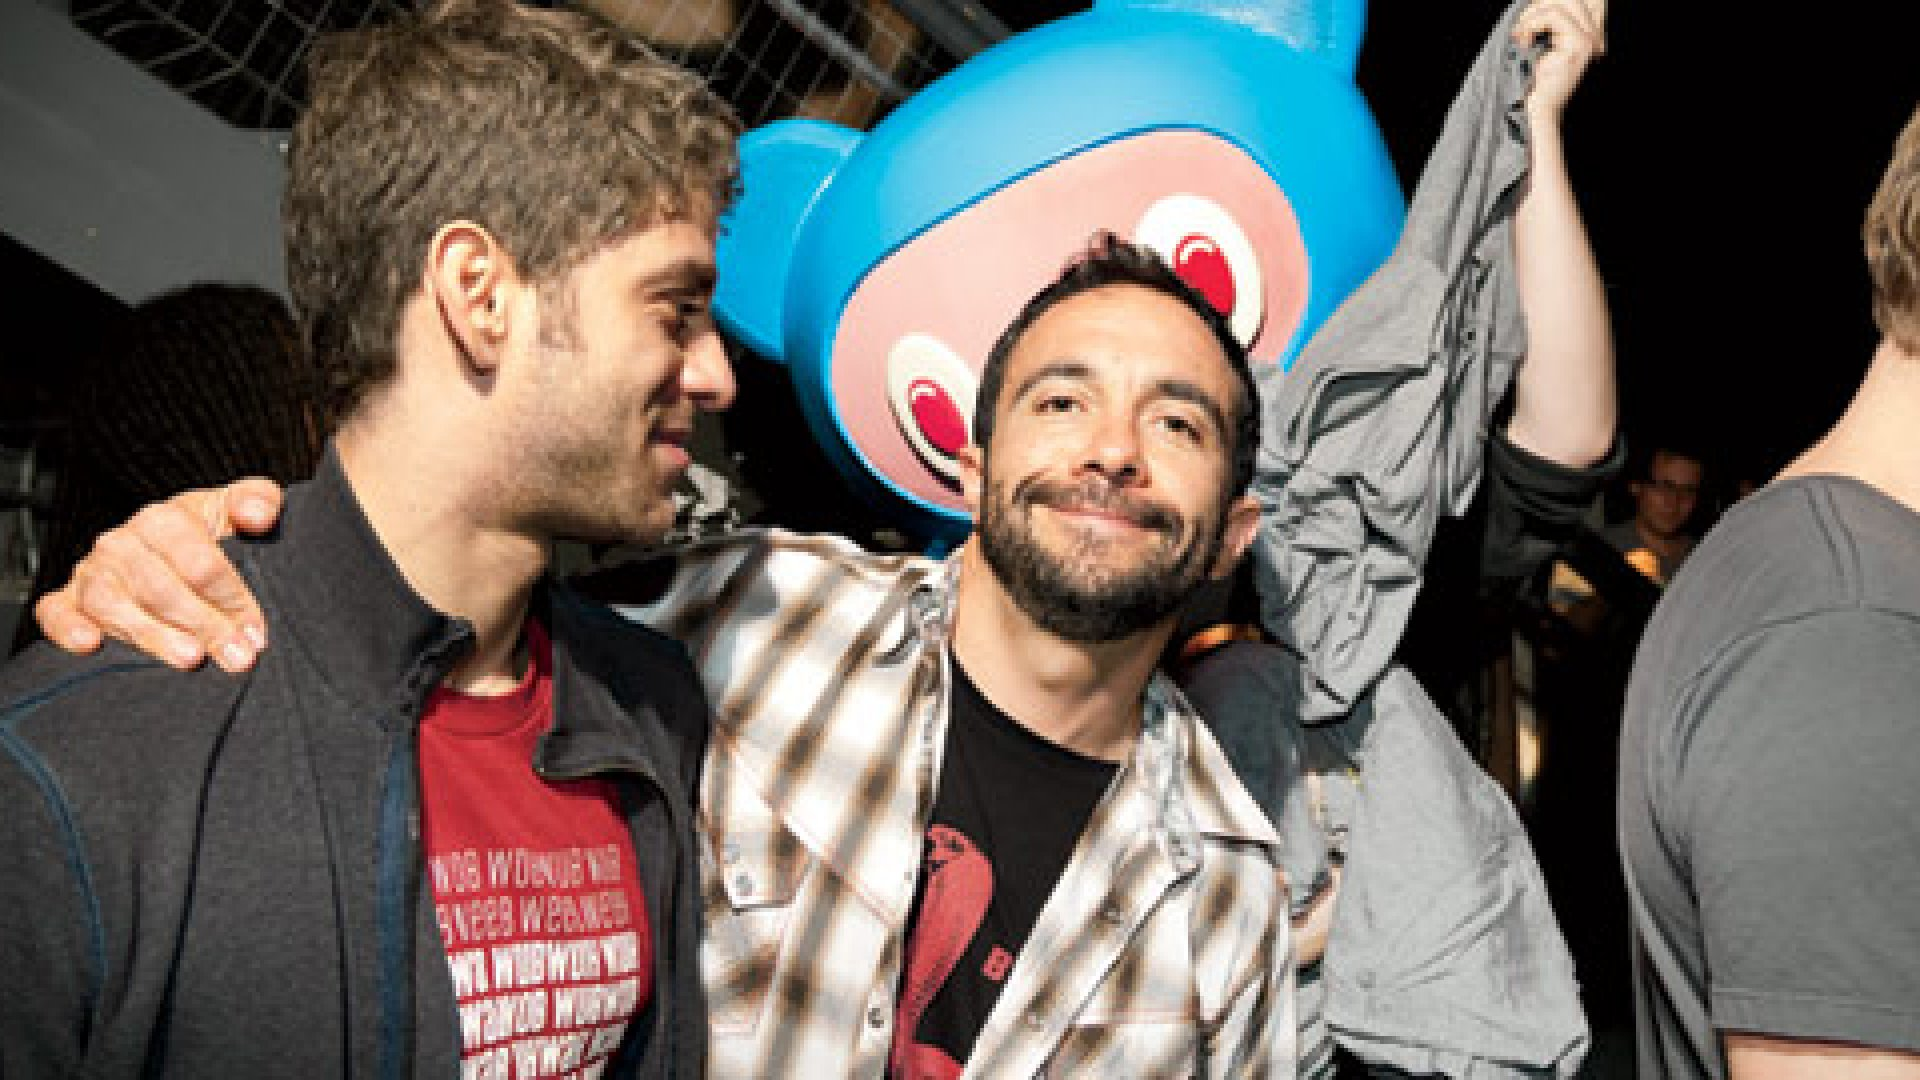 <b>THE ARTIST AND THE BUSINESS GUY:</b> Billy Chasen (left) and Seth Goldstein at a SXSW party hosted by their company, Turntable.fm. The blue bear represents an avatar from the site.